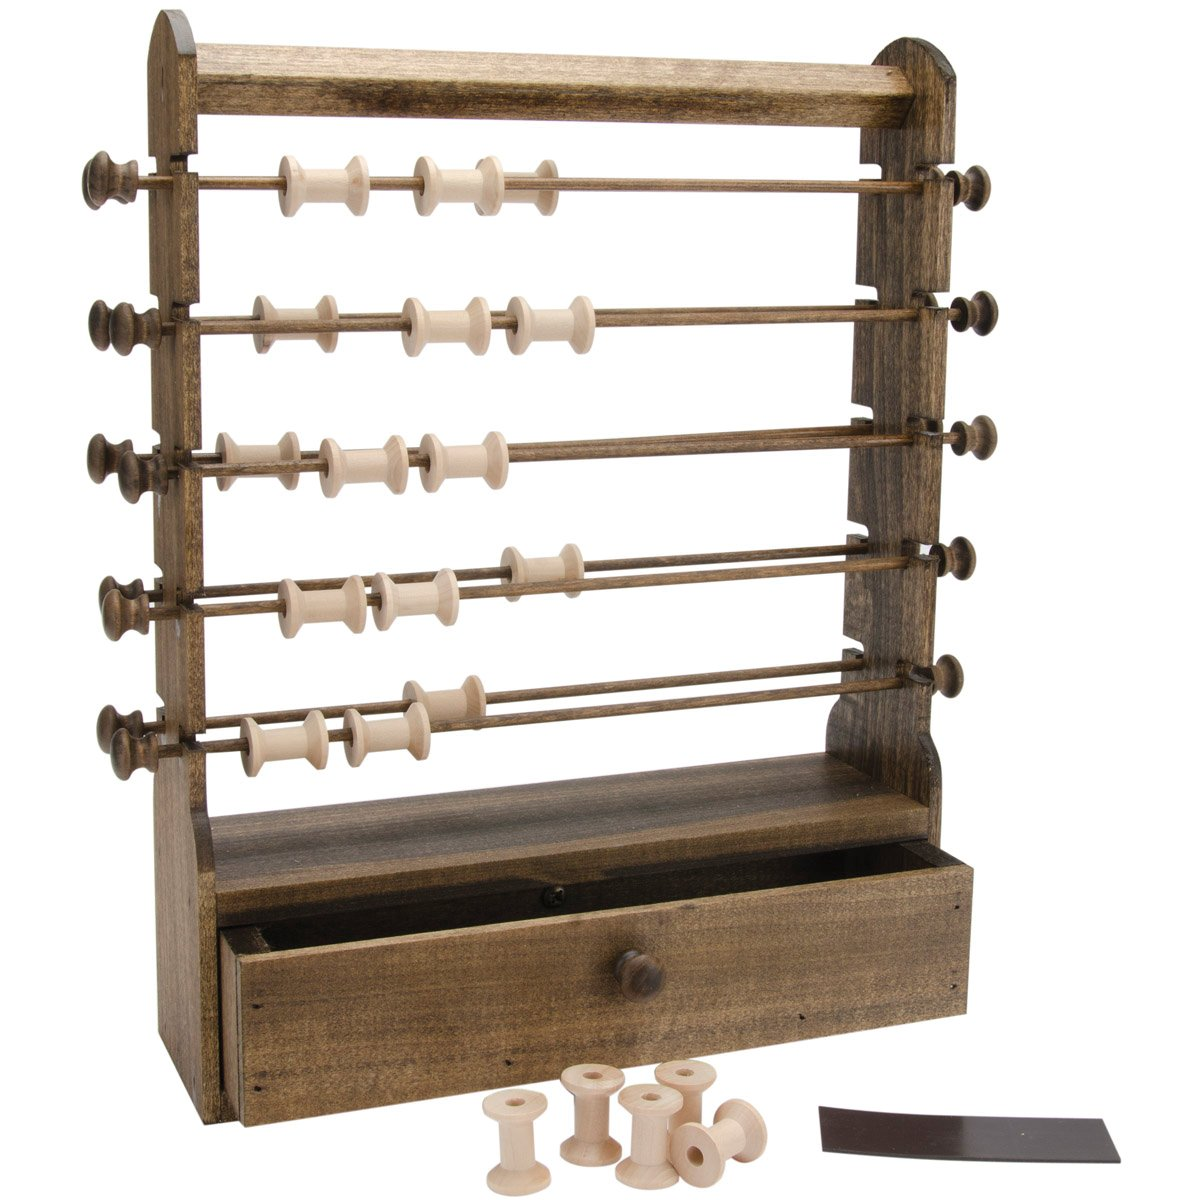 Edmunds Antique Thread Keeper, 12 by 3-1/2 by 16-Inch by Edmunds